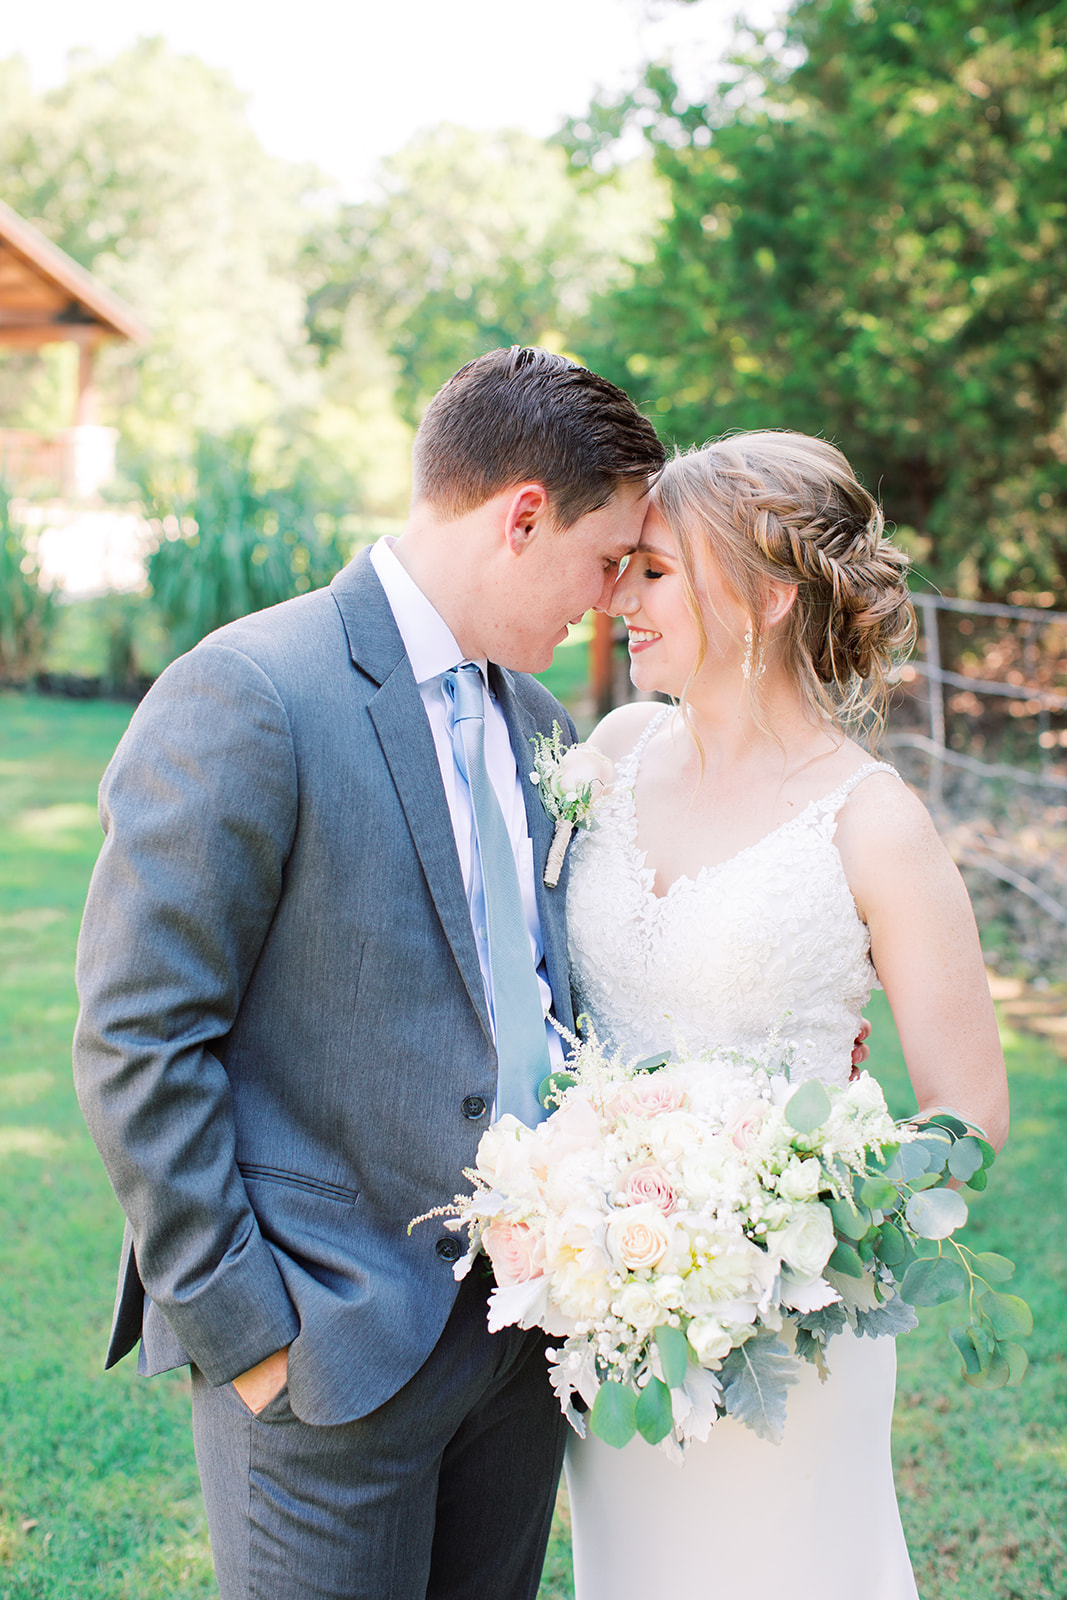 Wedding photo ideas: | Romantic blue Texas wedding at Spring Venue by Alexa Kay Events